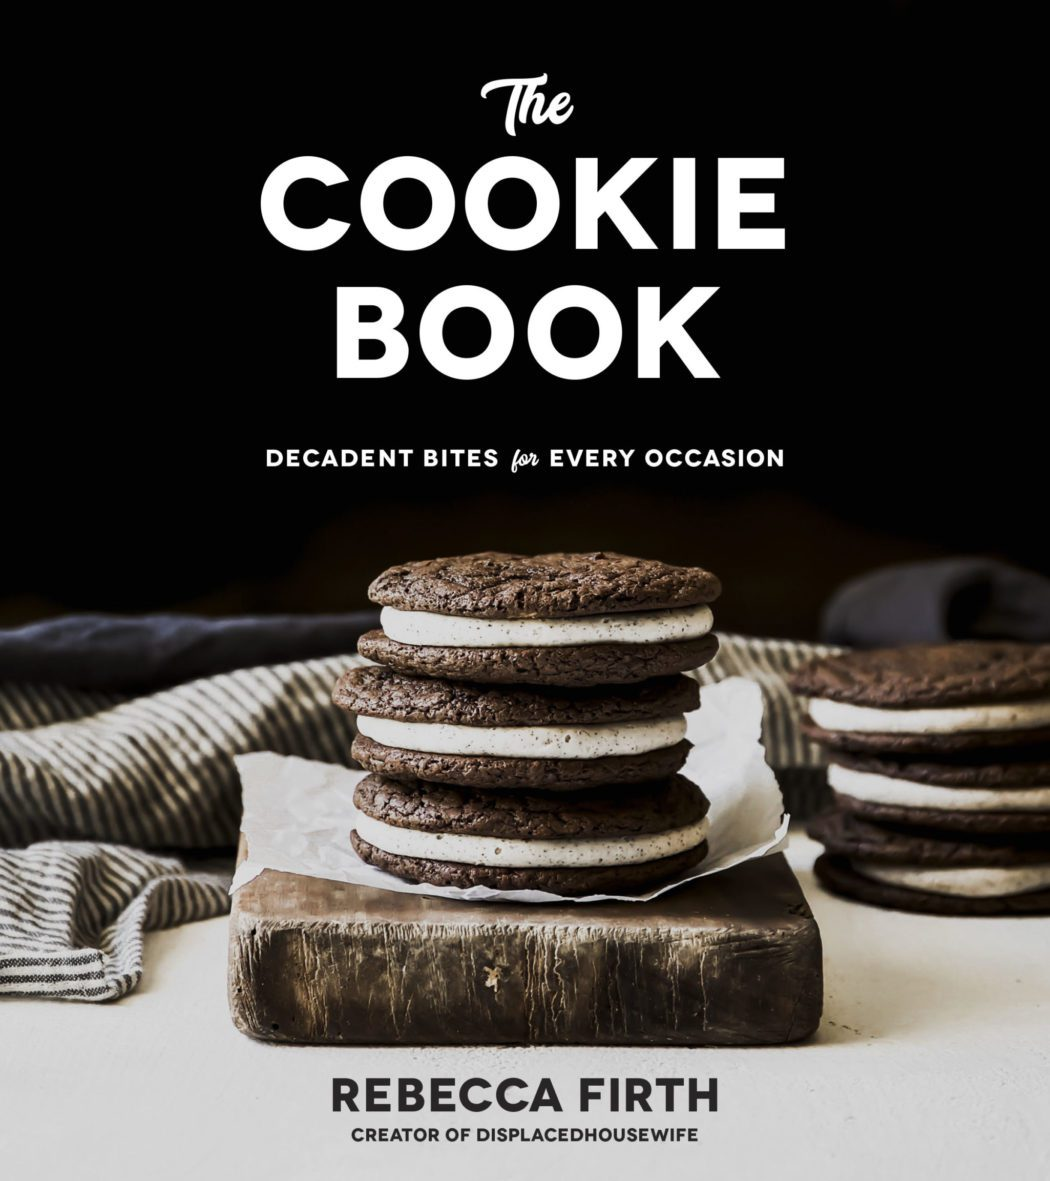 The Cookie Book book cover